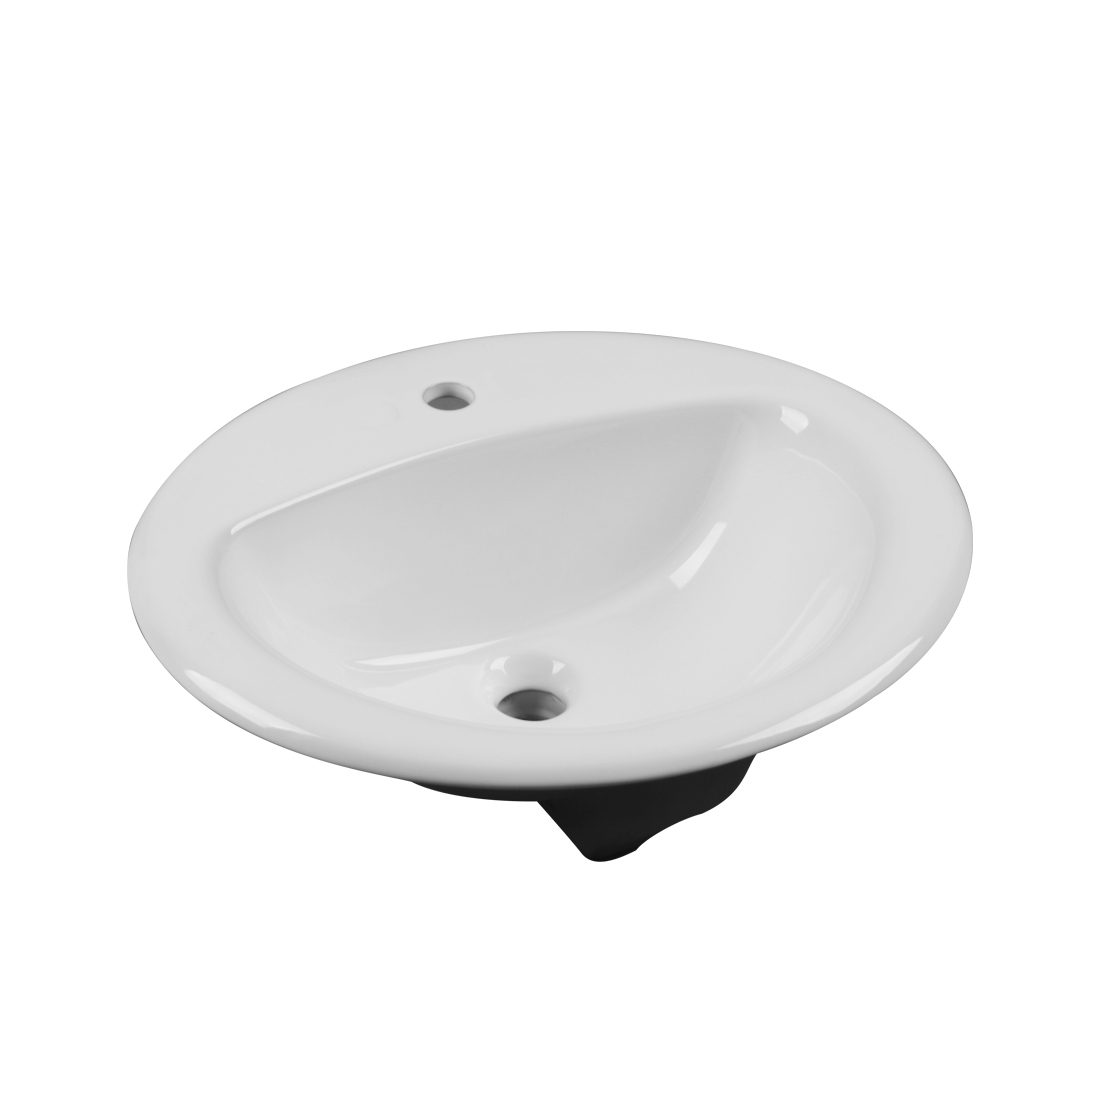 New York Lavatory Single Hole White Front View